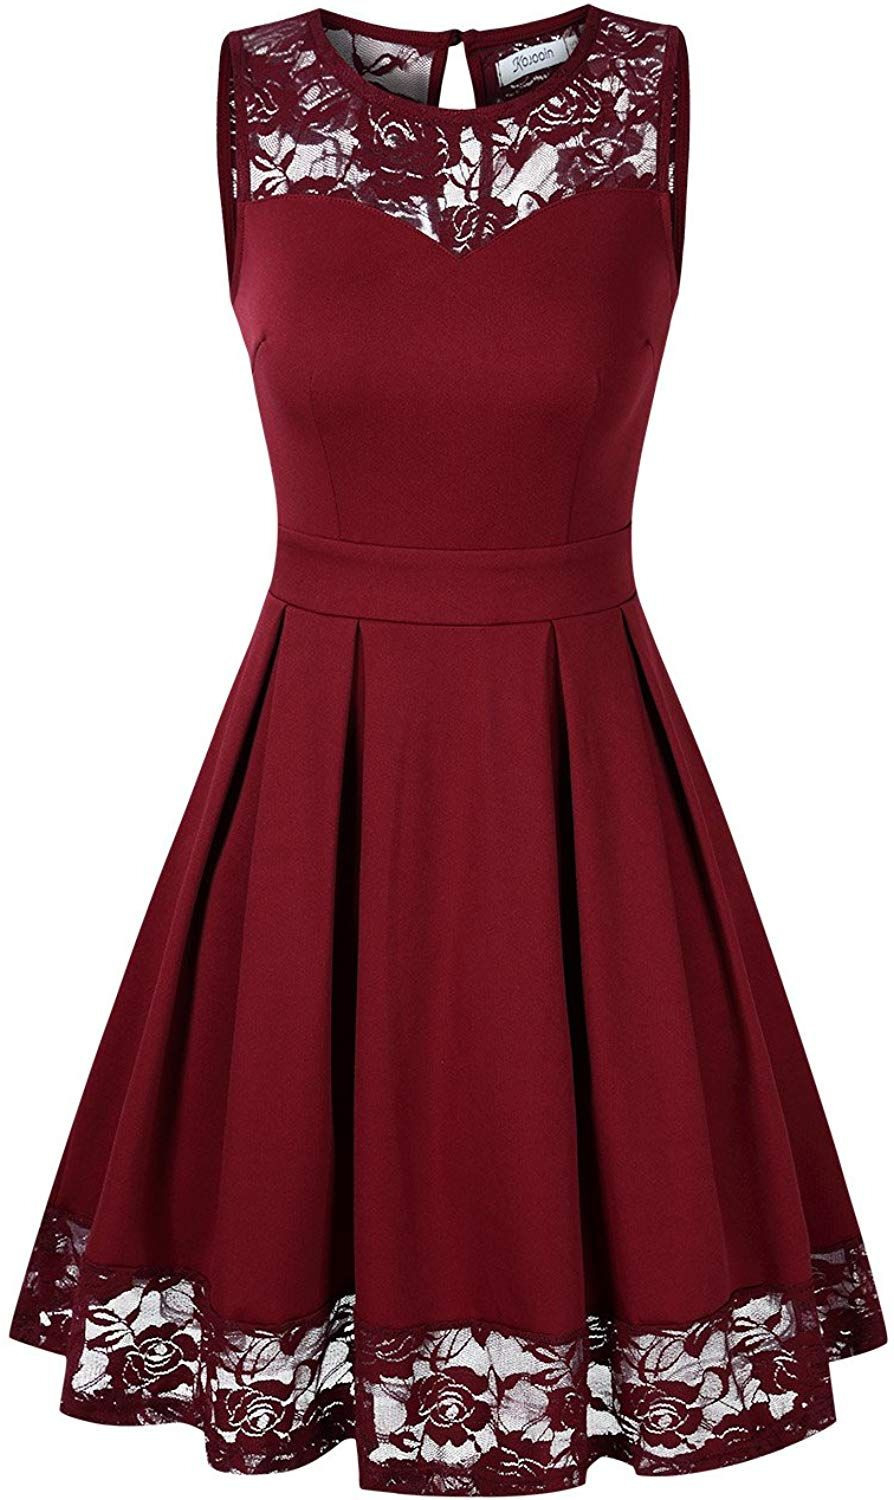 20 Luxus About You Abendkleid Rot für 201910 Schön About You Abendkleid Rot für 2019